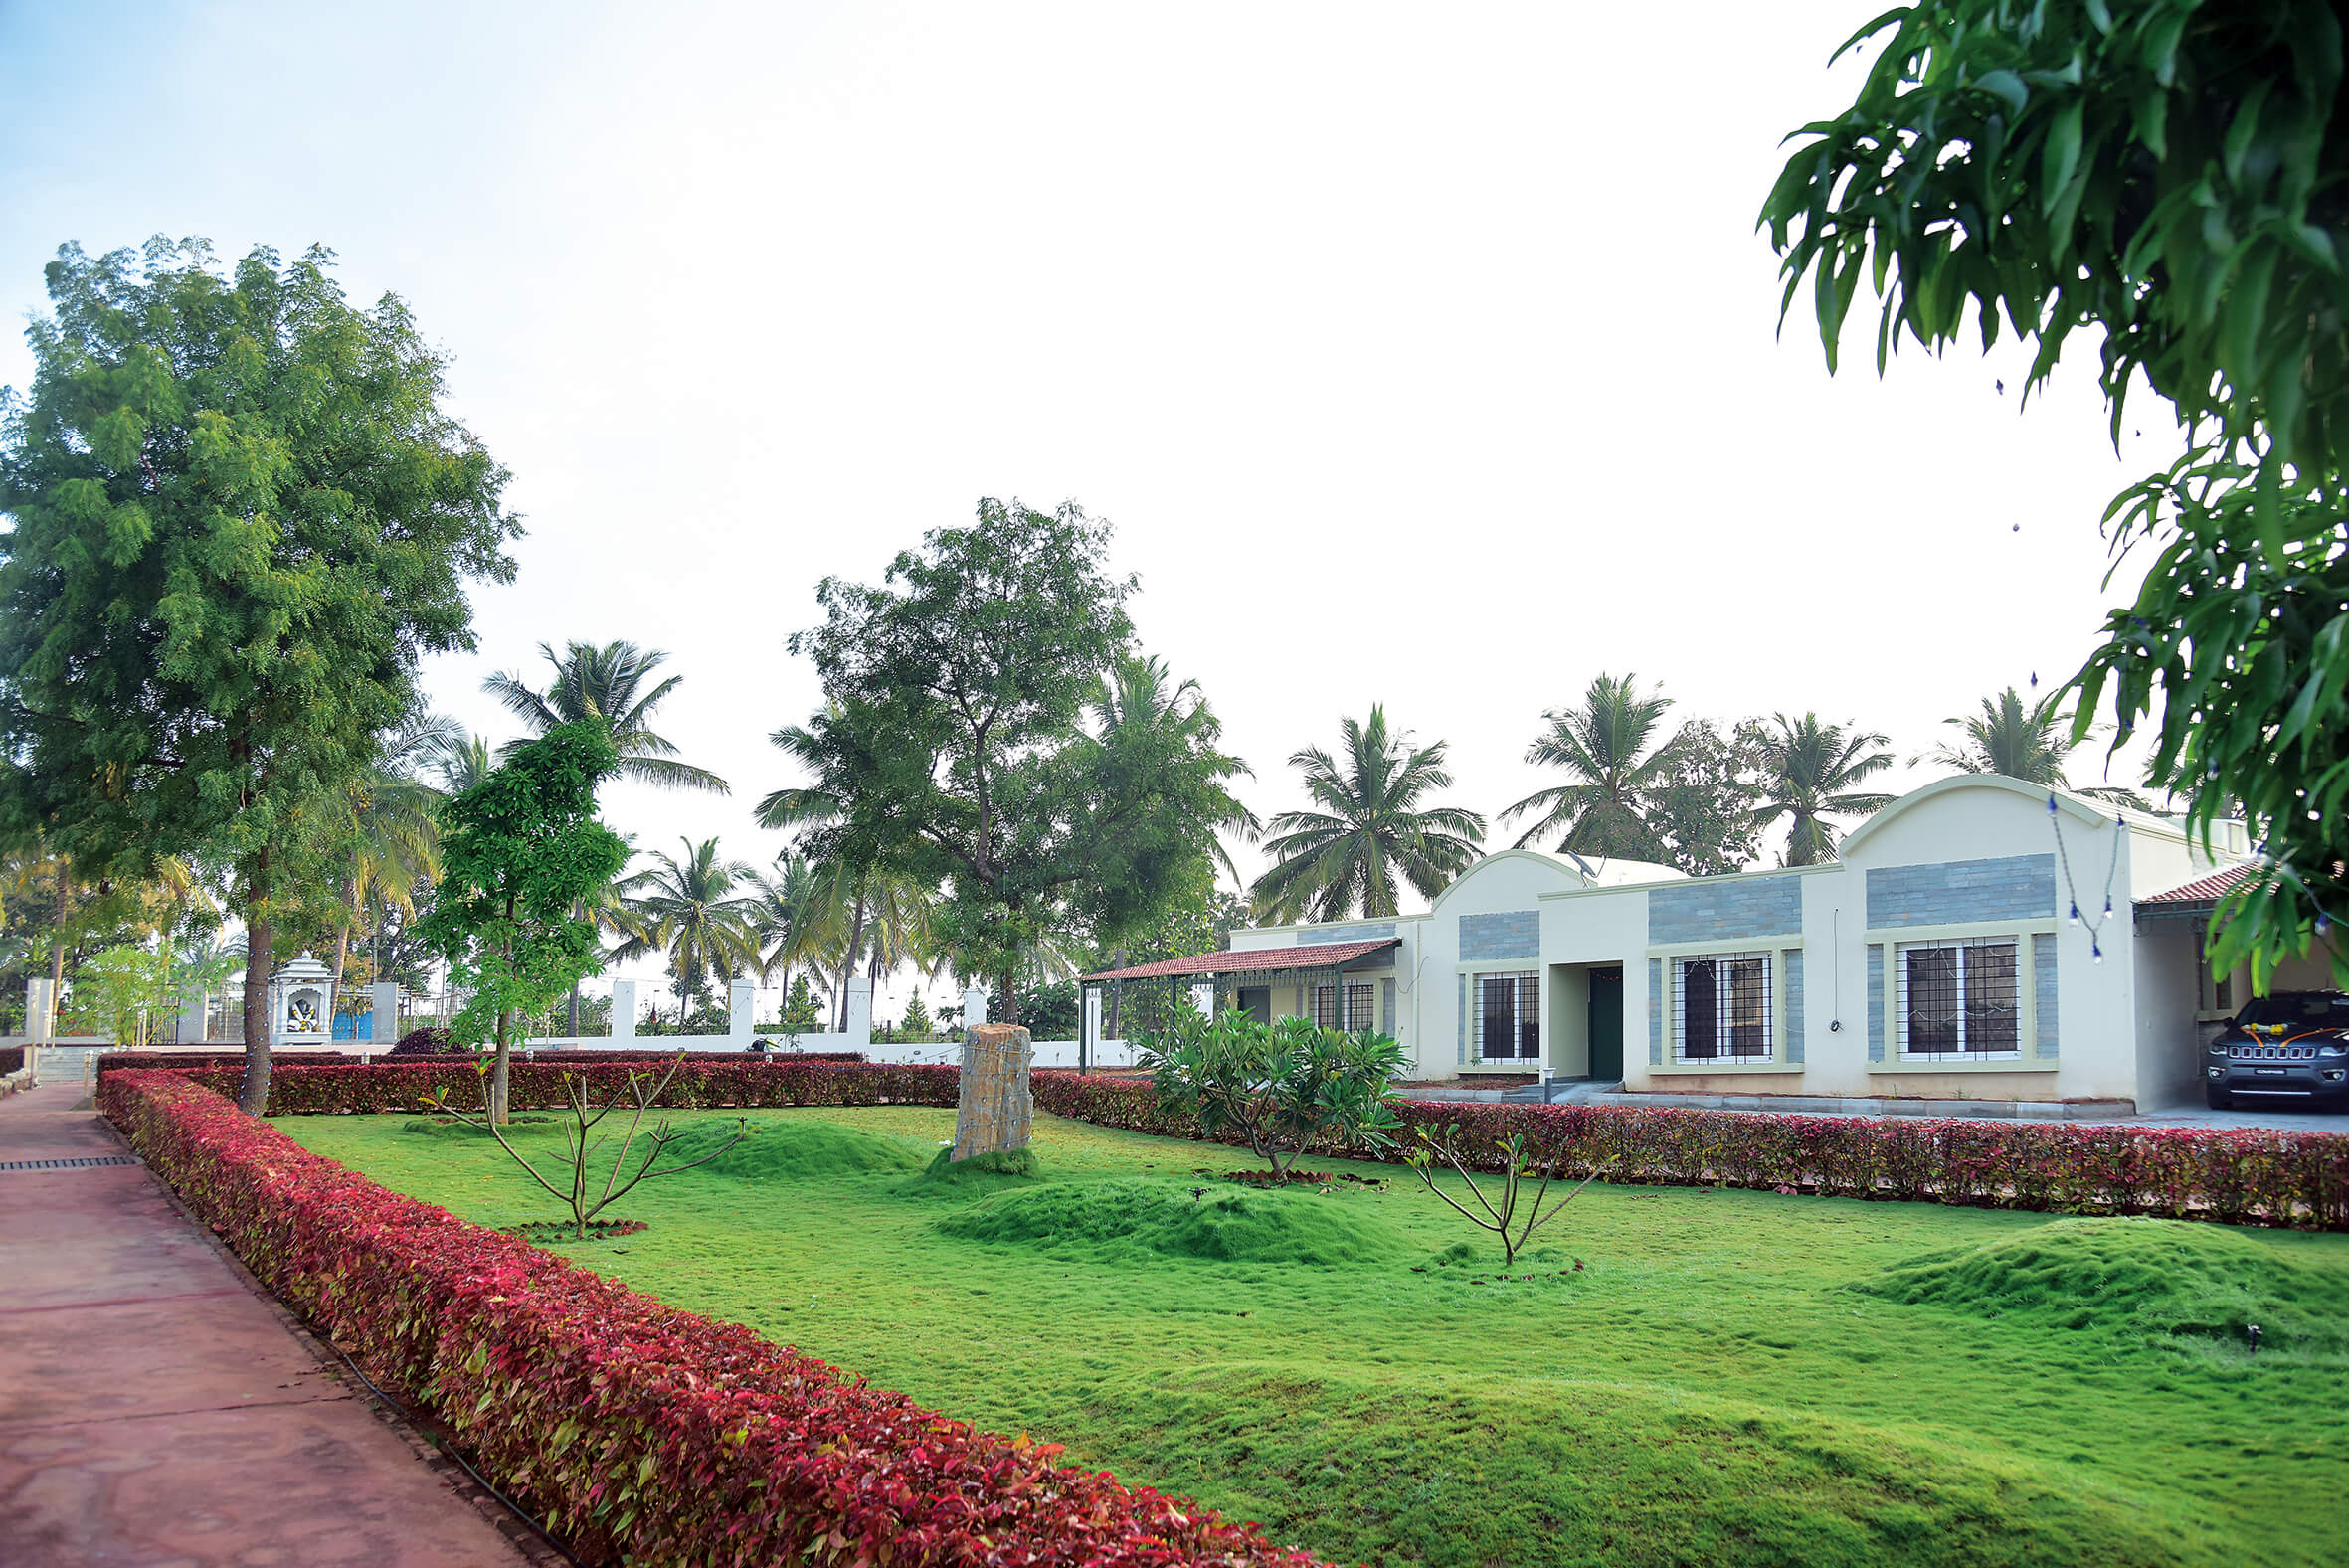 Flower Garden and Open Space - Sree Senior Homes